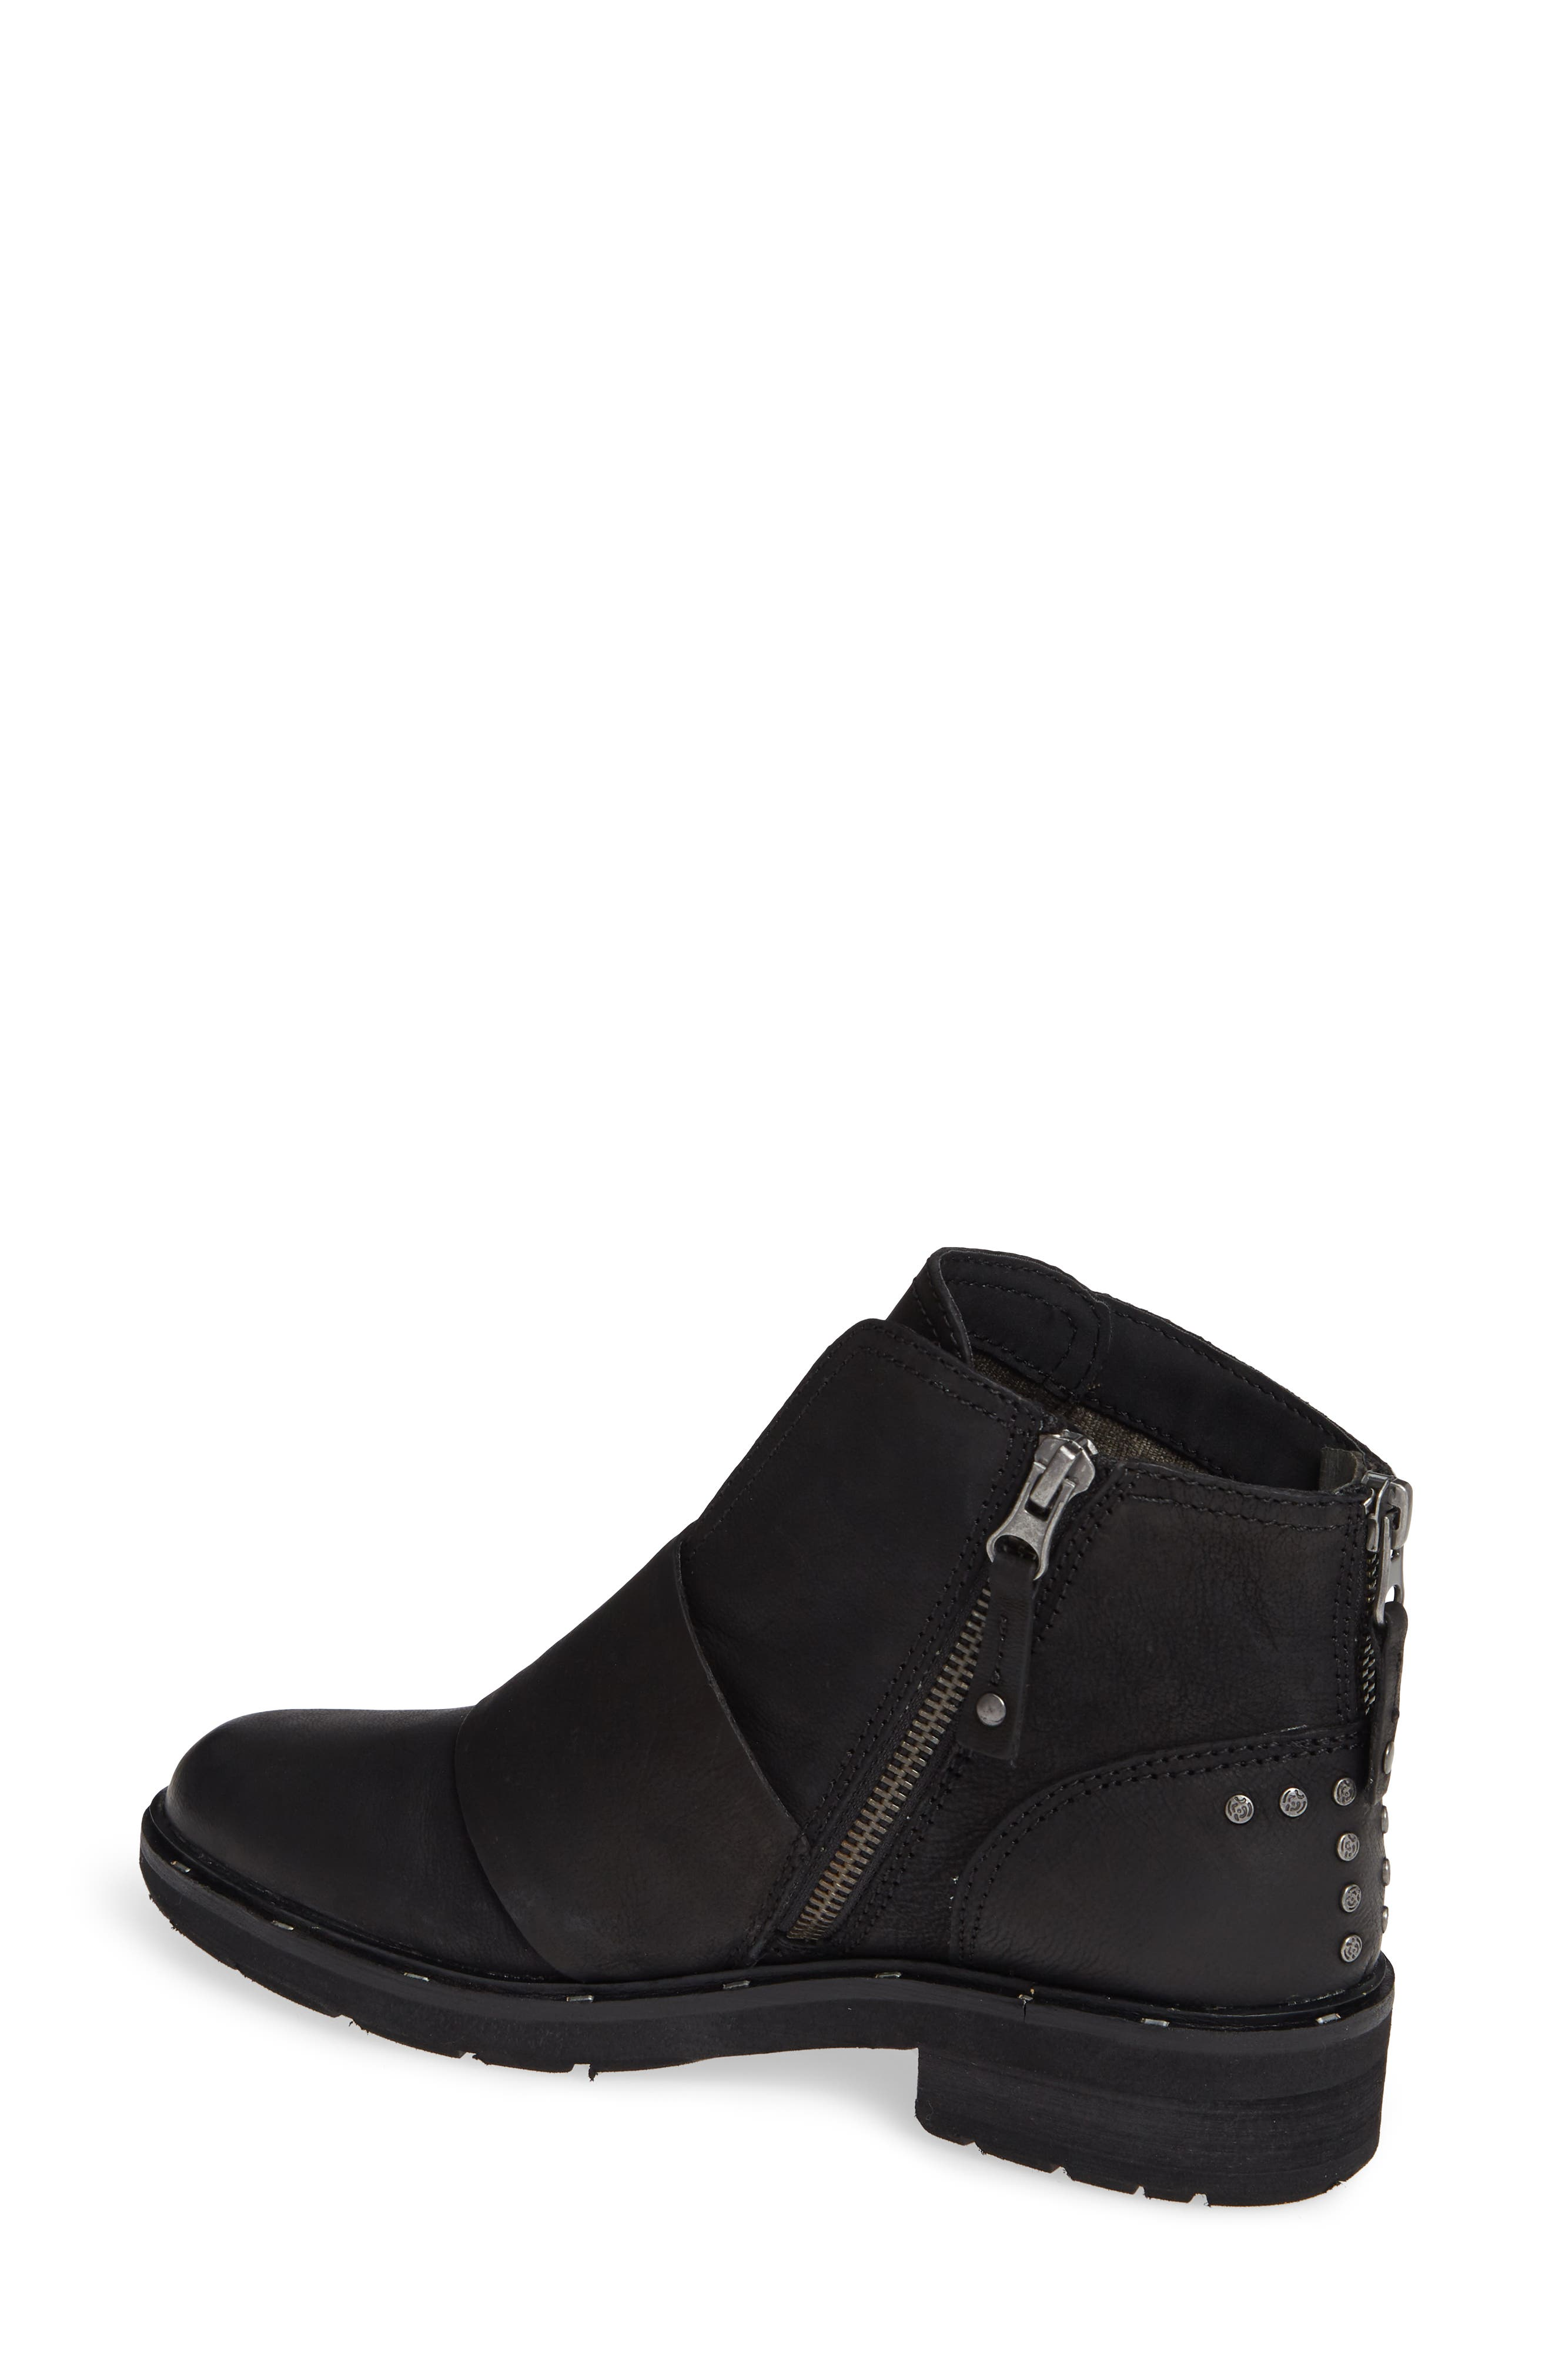 Frontage Bootie,                             Alternate thumbnail 2, color,                             BLACK LEATHER